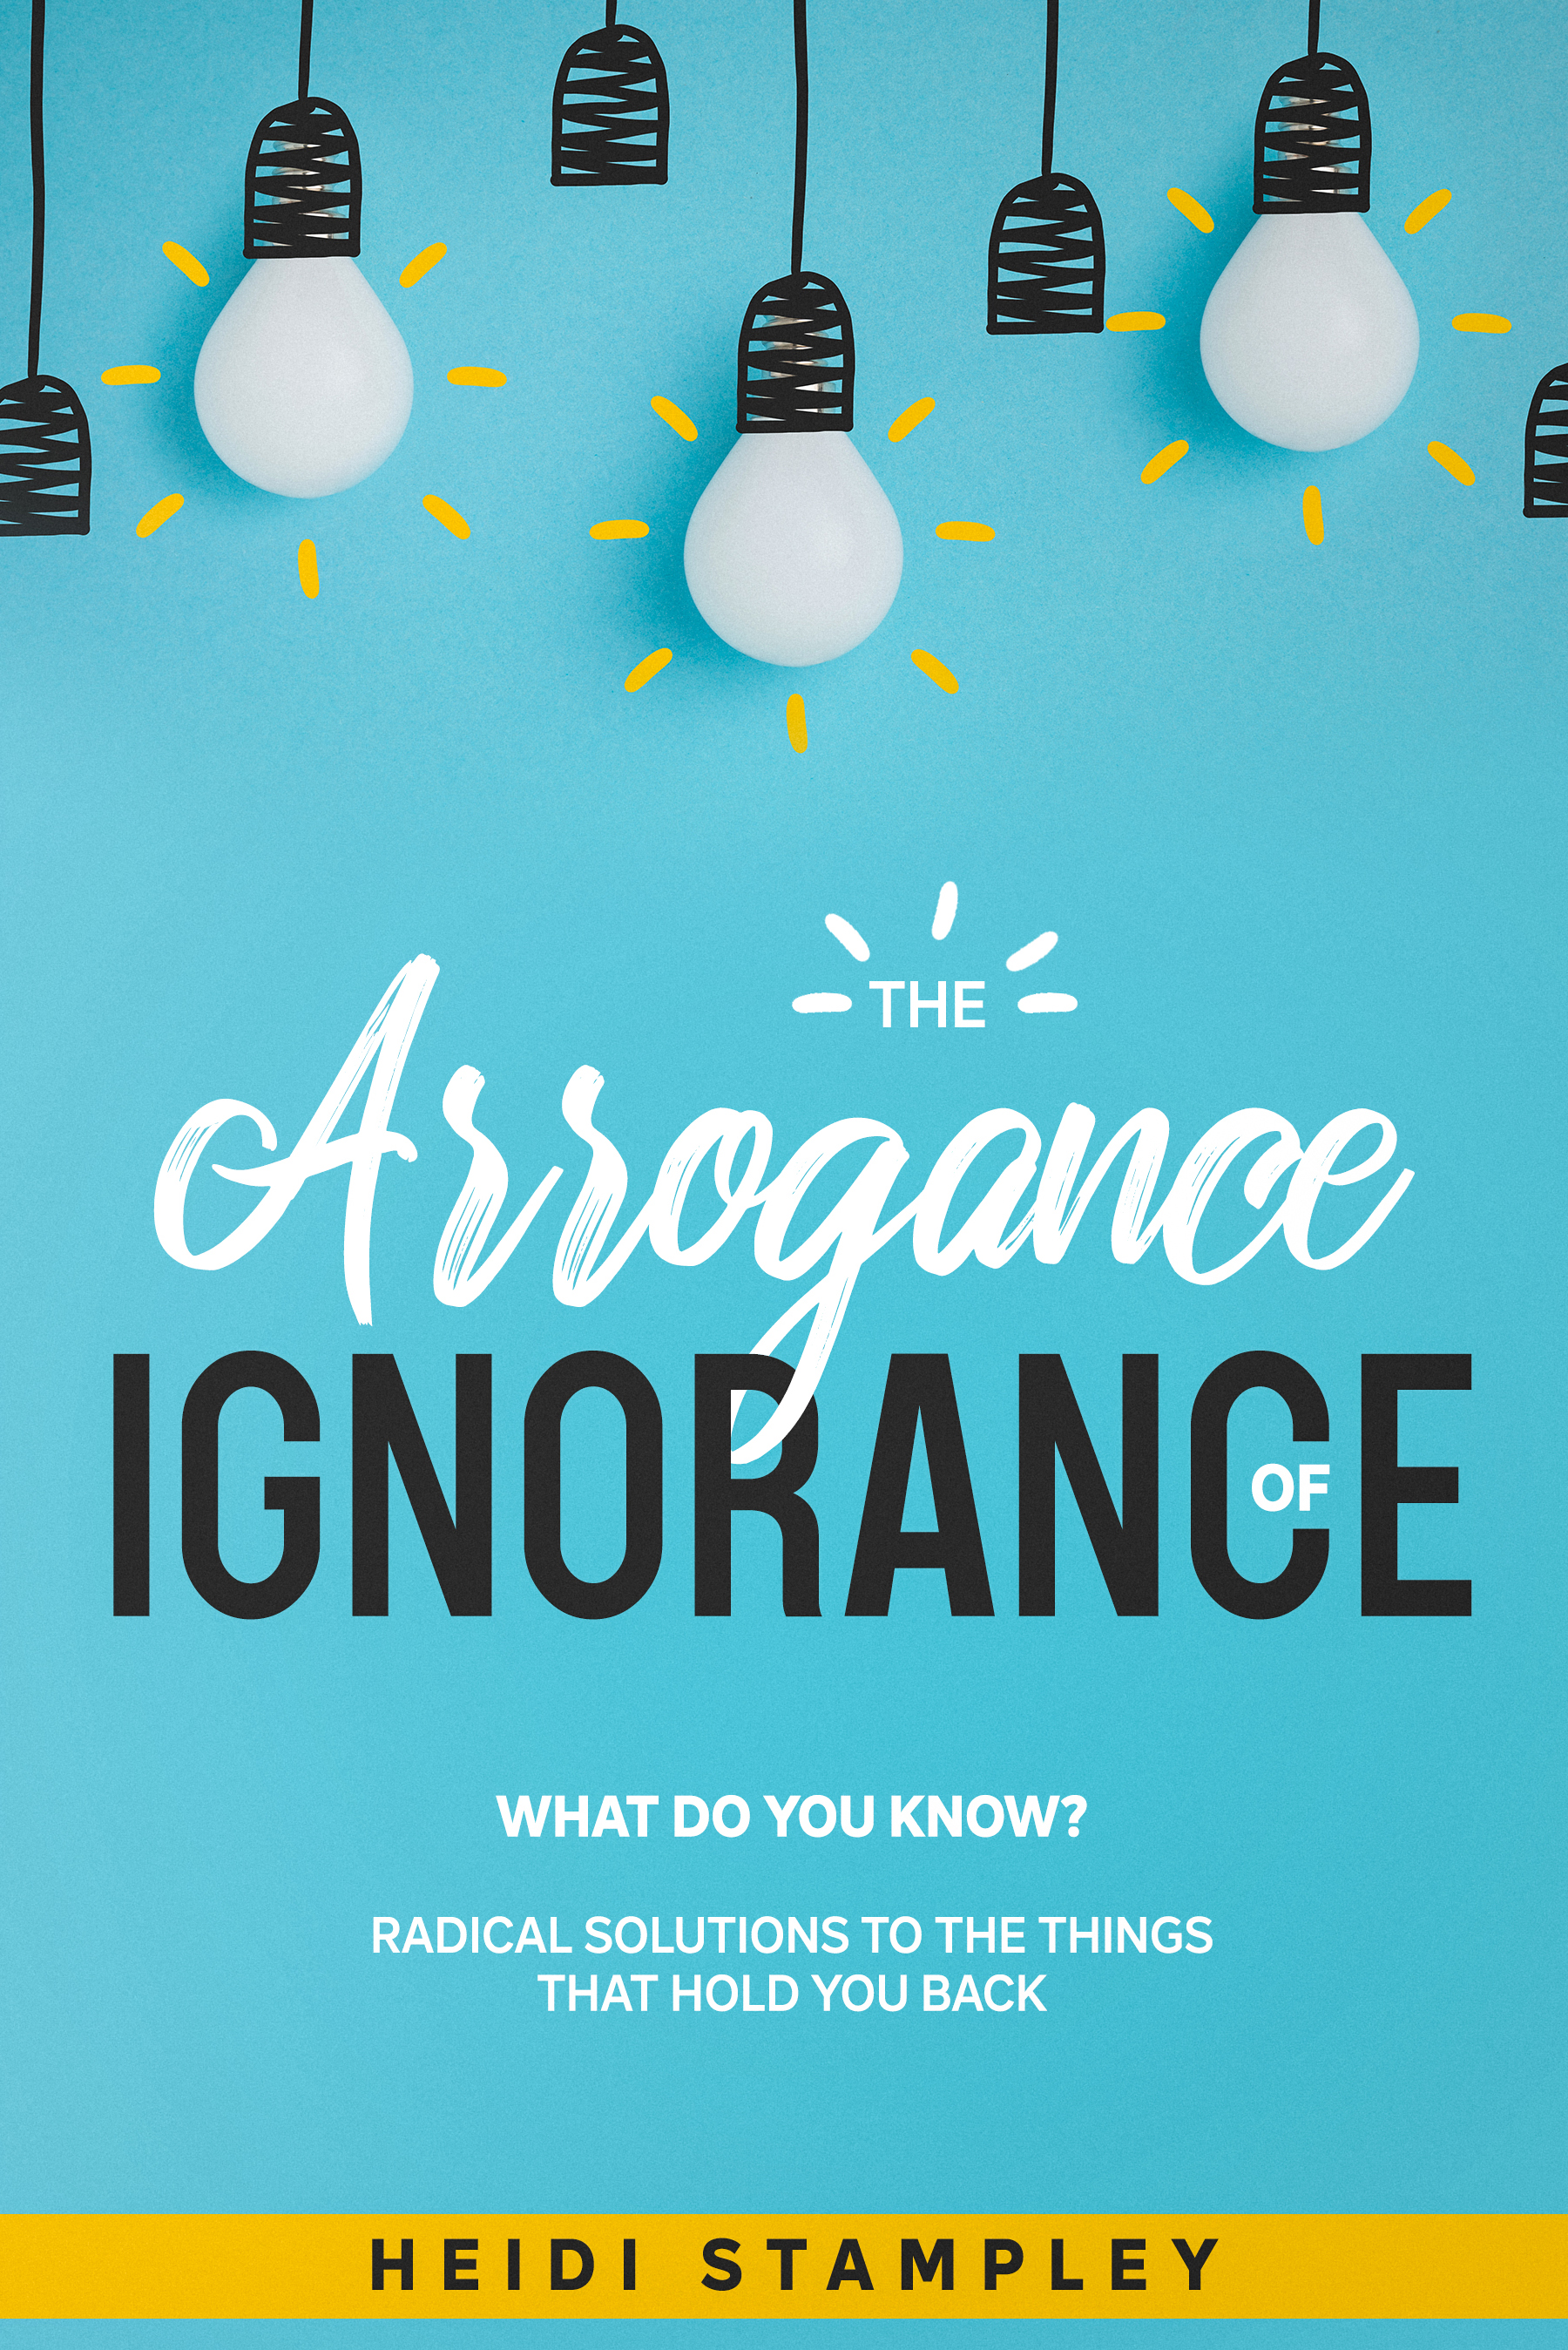 Heidi Stampley Launches Debut Book: The Arrogance of Ignorance